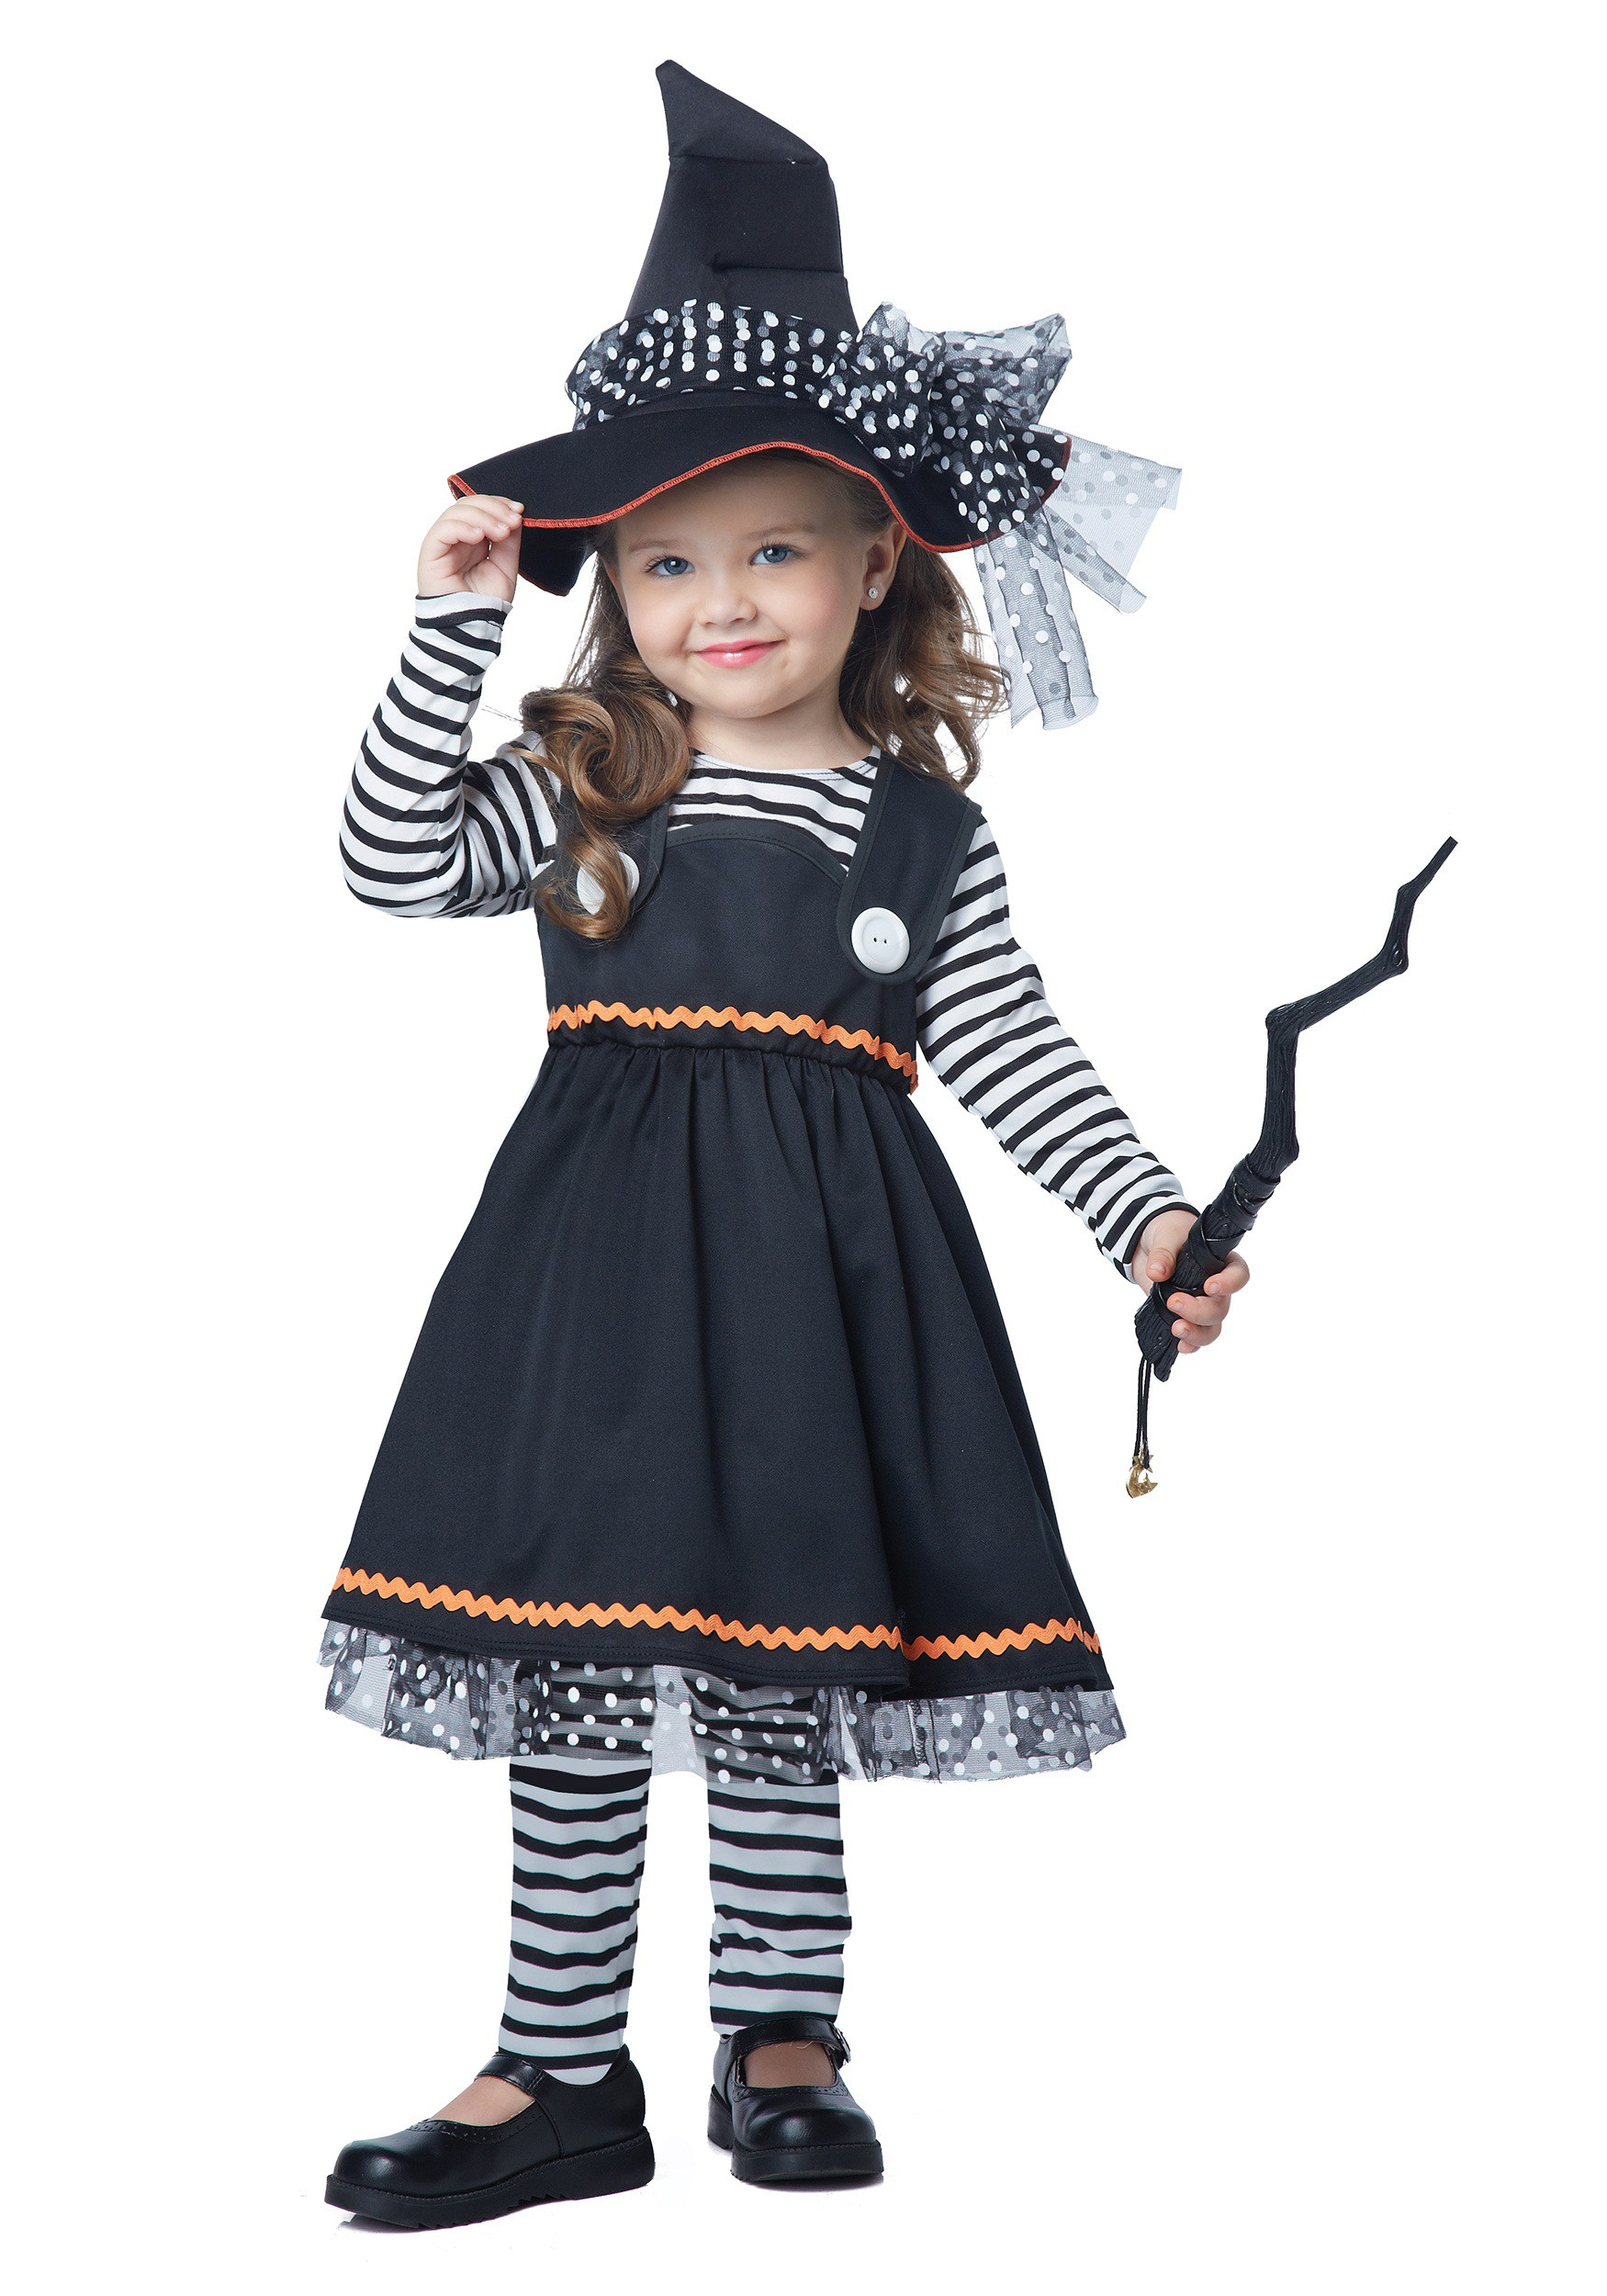 Crafty Little Witch Costume For Little Kids  sc 1 st  Fun.com & Crafty Little Witch Costume For Toddlers